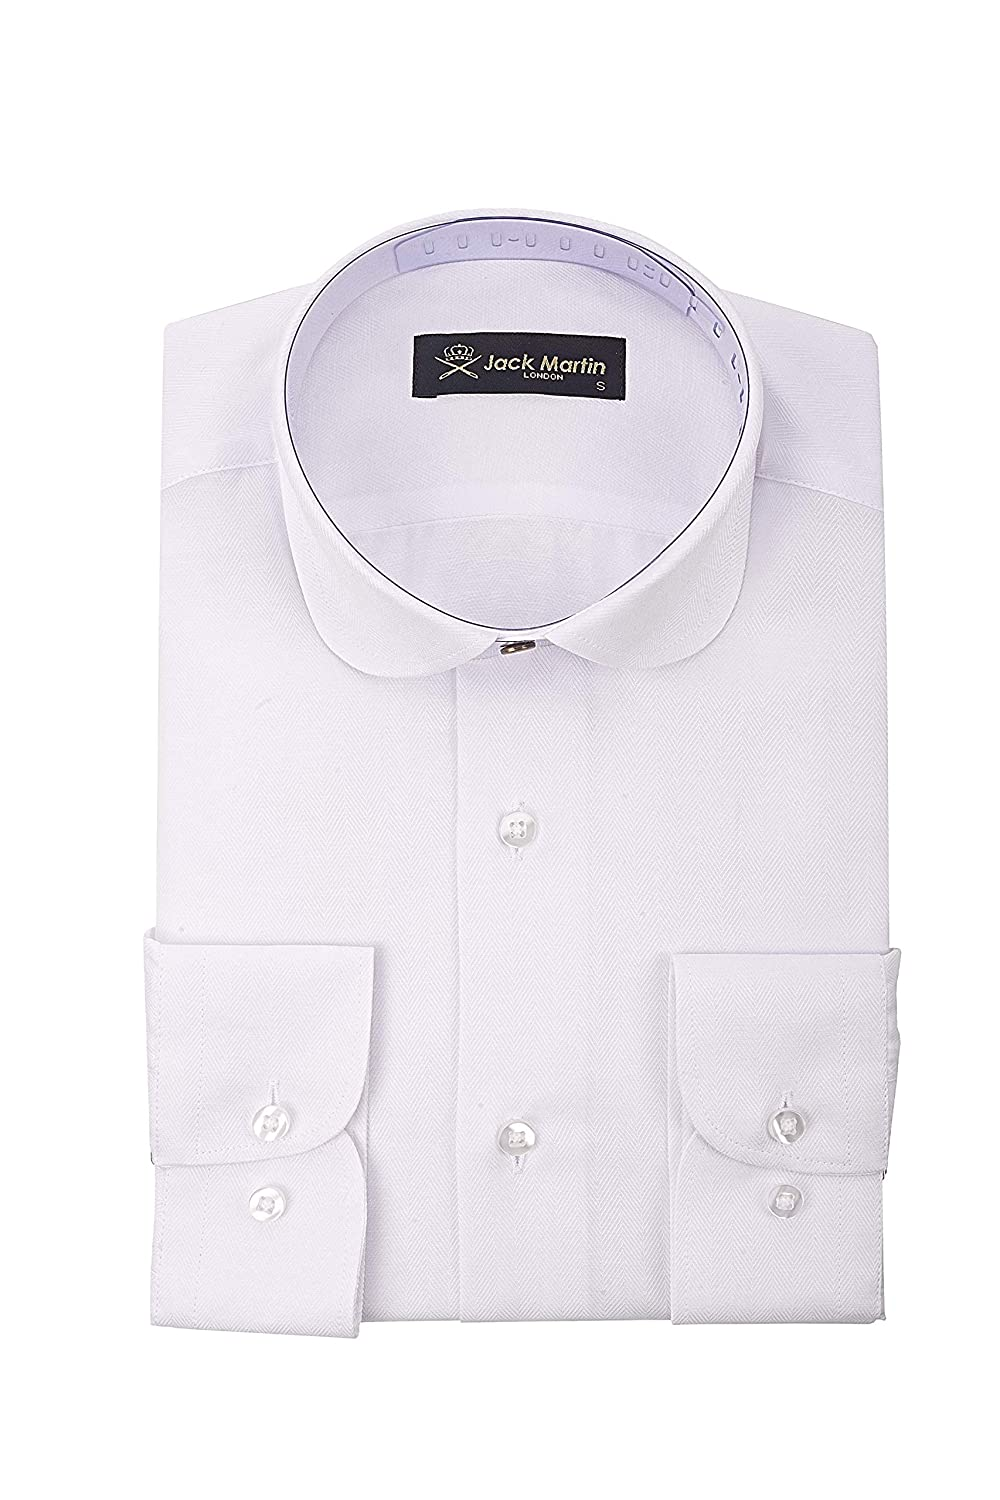 Peaky Blinders & Boardwalk Empire: Men's 1920s Gangster Clothing Jack Martin London Peaky Blinders - Club/Penny Collar - White Herringbone Slim Fit Shirt £29.00 AT vintagedancer.com